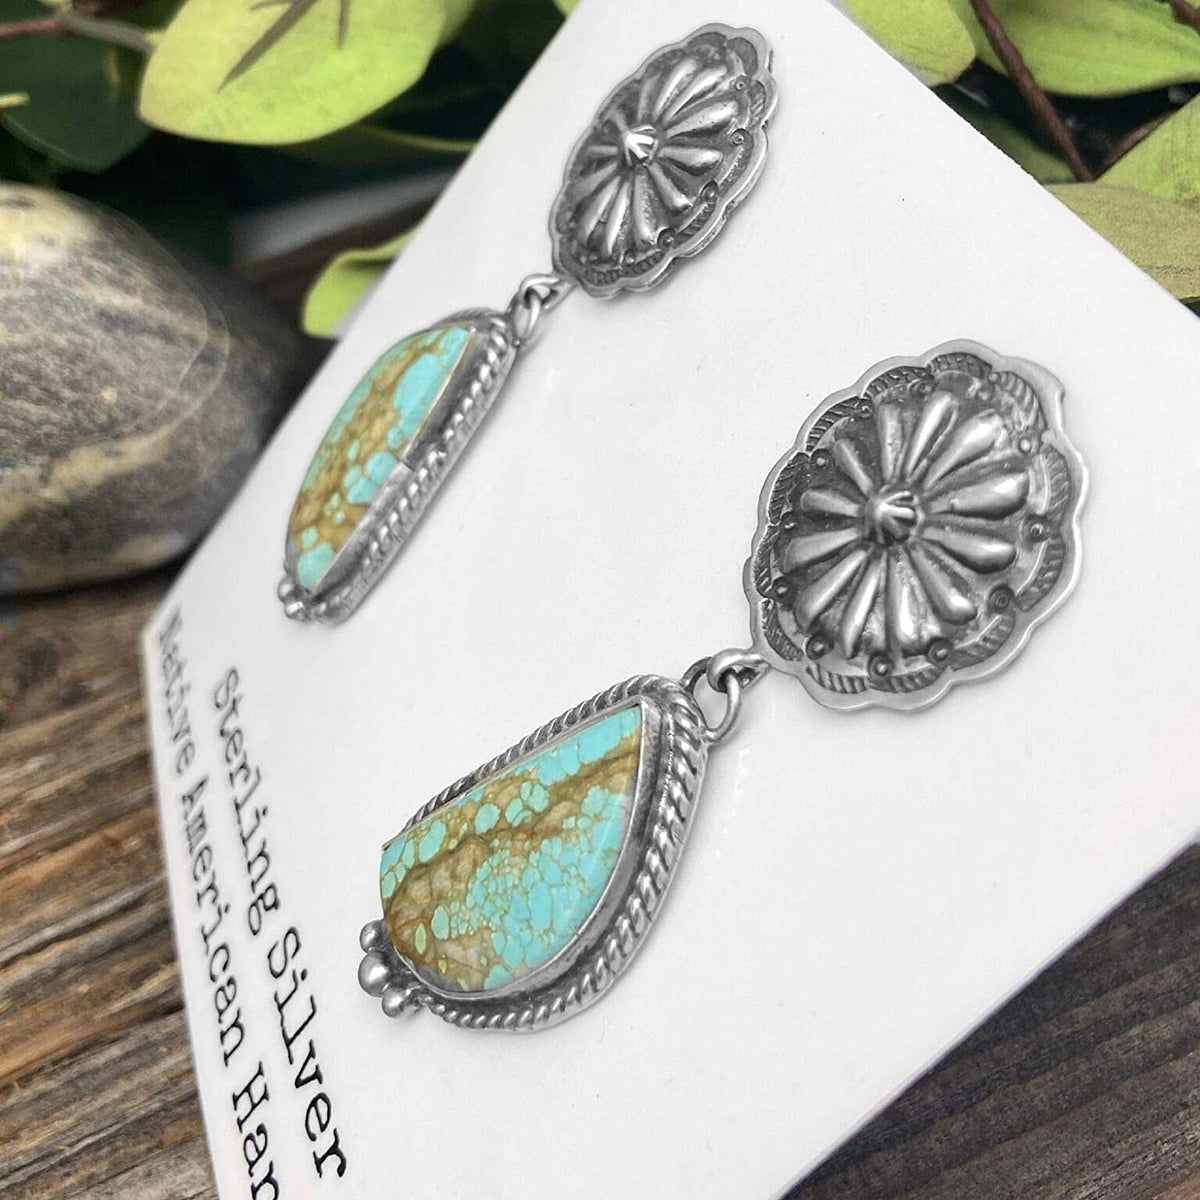 Genuine Royston Turquoise Statement Earrings in Oxidized 925 Sterling Silver, Authentic Navajo Native American Handmade and Artist Signed, Nickle Free